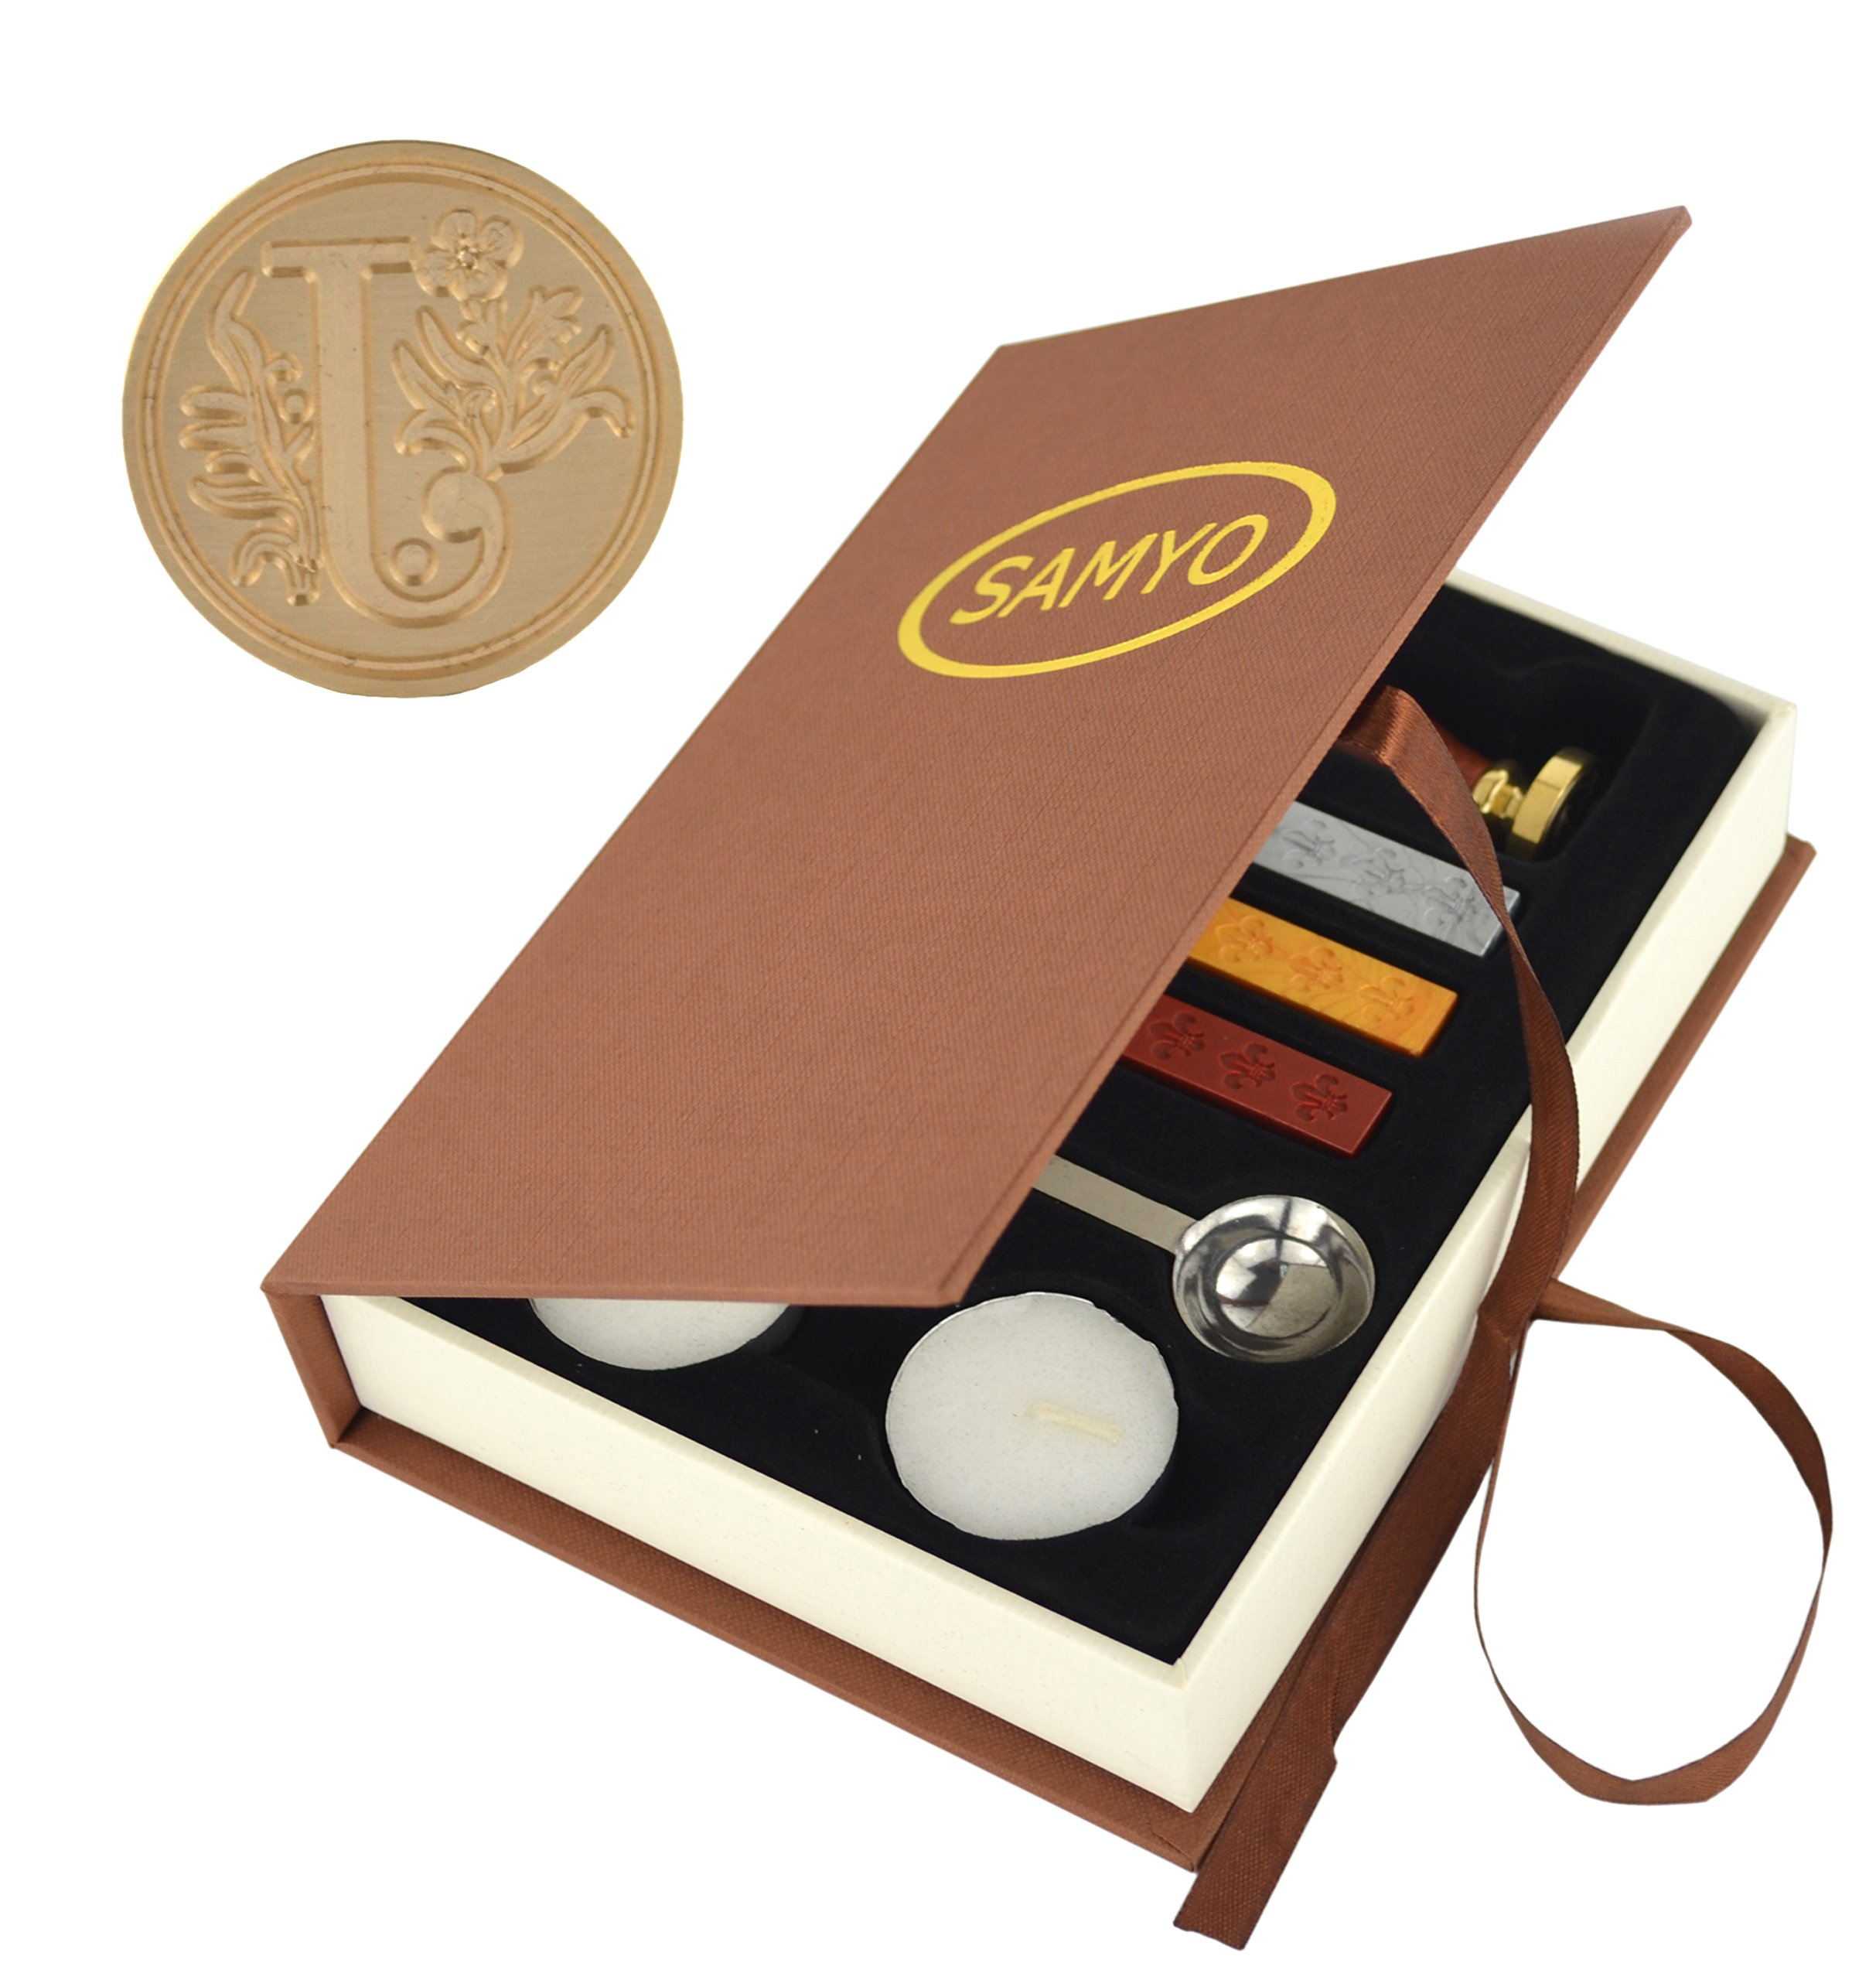 Samyo Wax Seal Stamp Kit Retro Creative Sealing Wax Stamp Maker Gift Box Set Brass Color Head with Vintage Classic Alphabet Initial Letter (J)